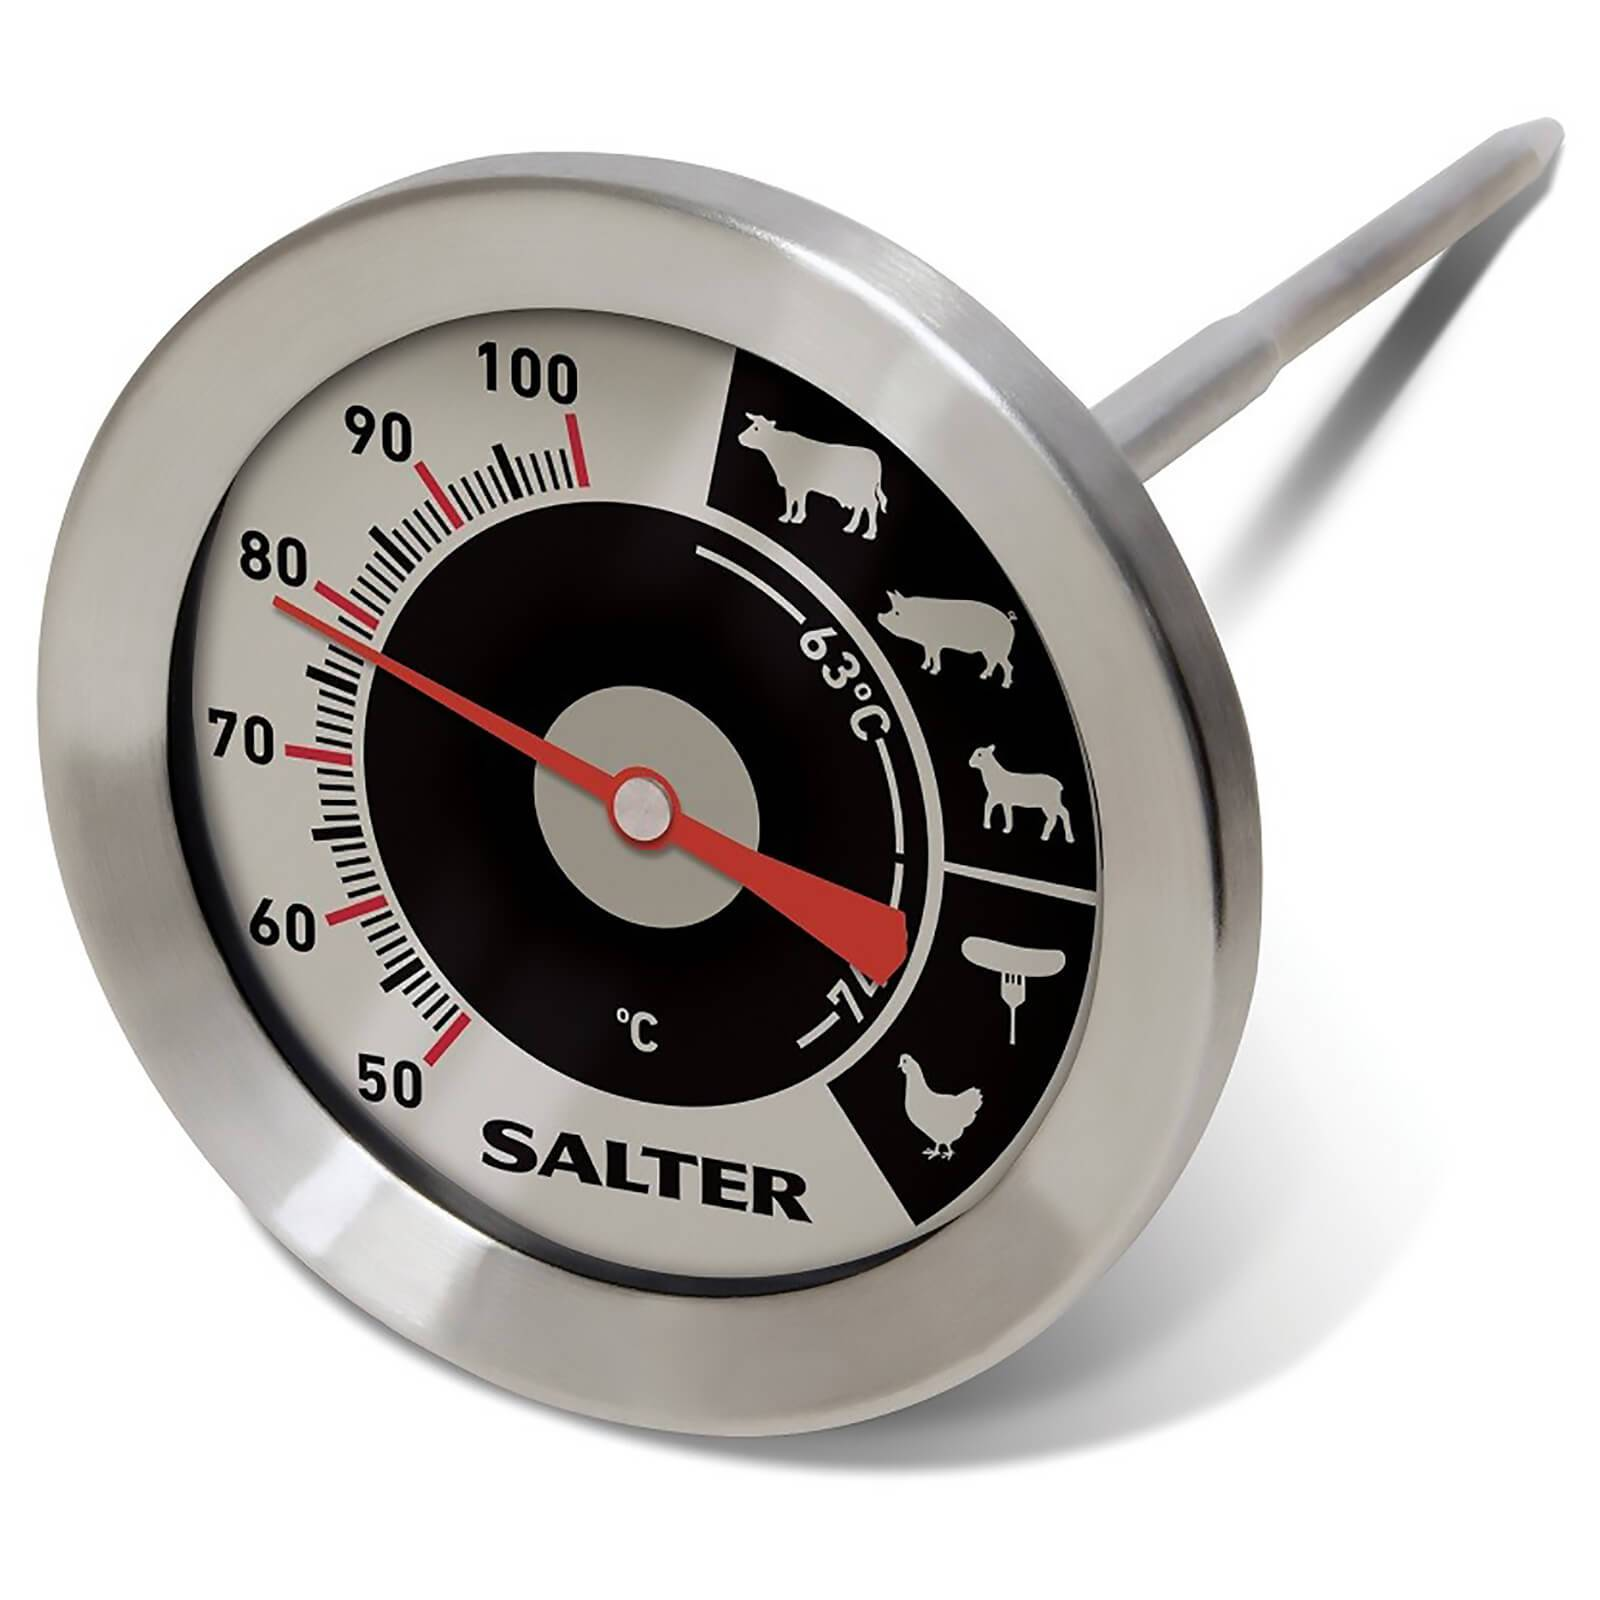 Salter Analogue Meat Thermometer - Stainless Steel